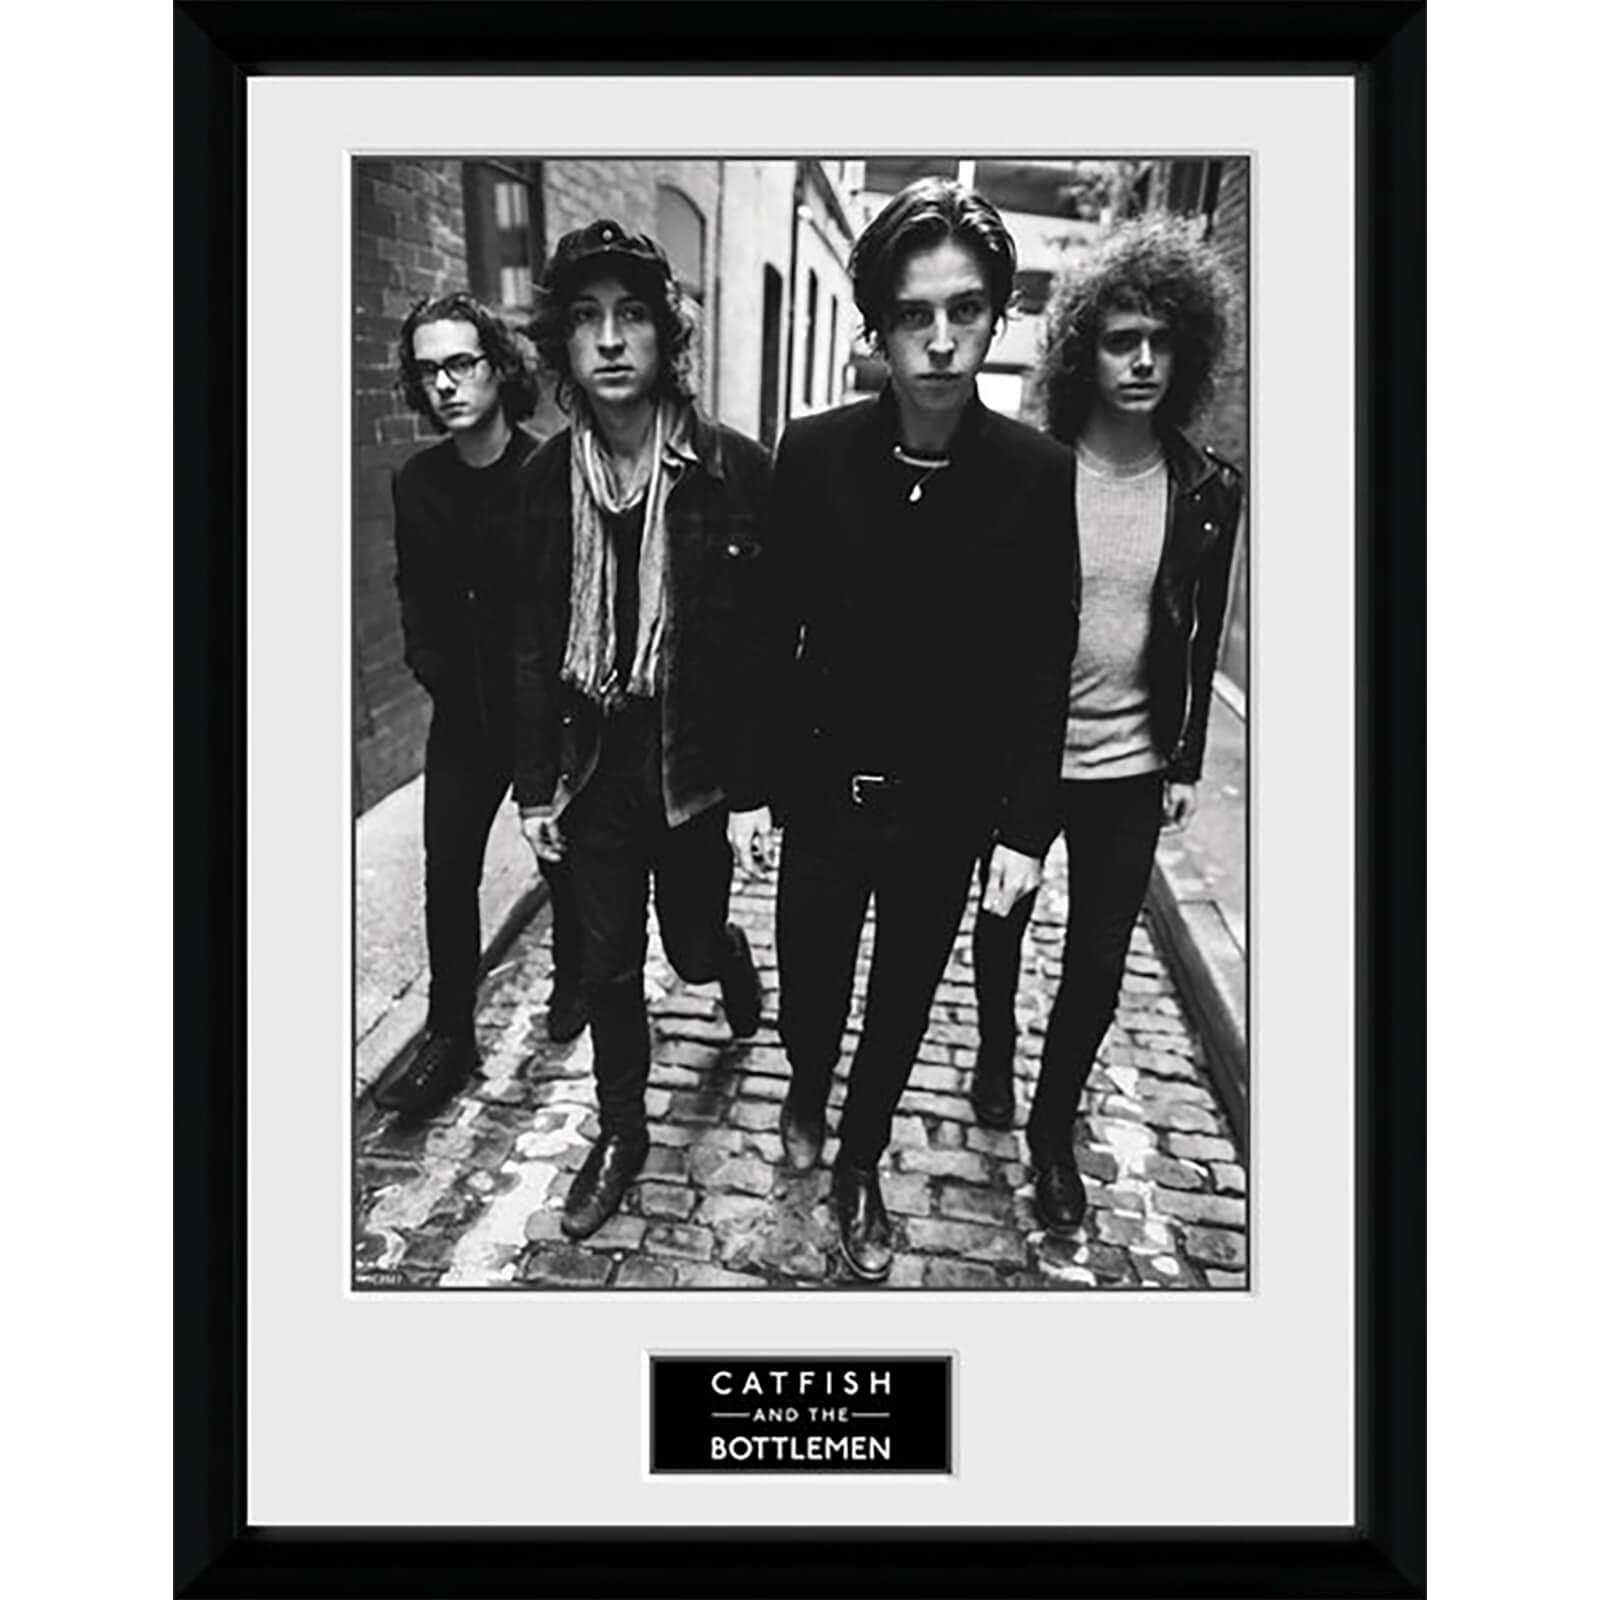 Catfish and the Bottlemen Band - 16 x 12 Inches Framed Photograph